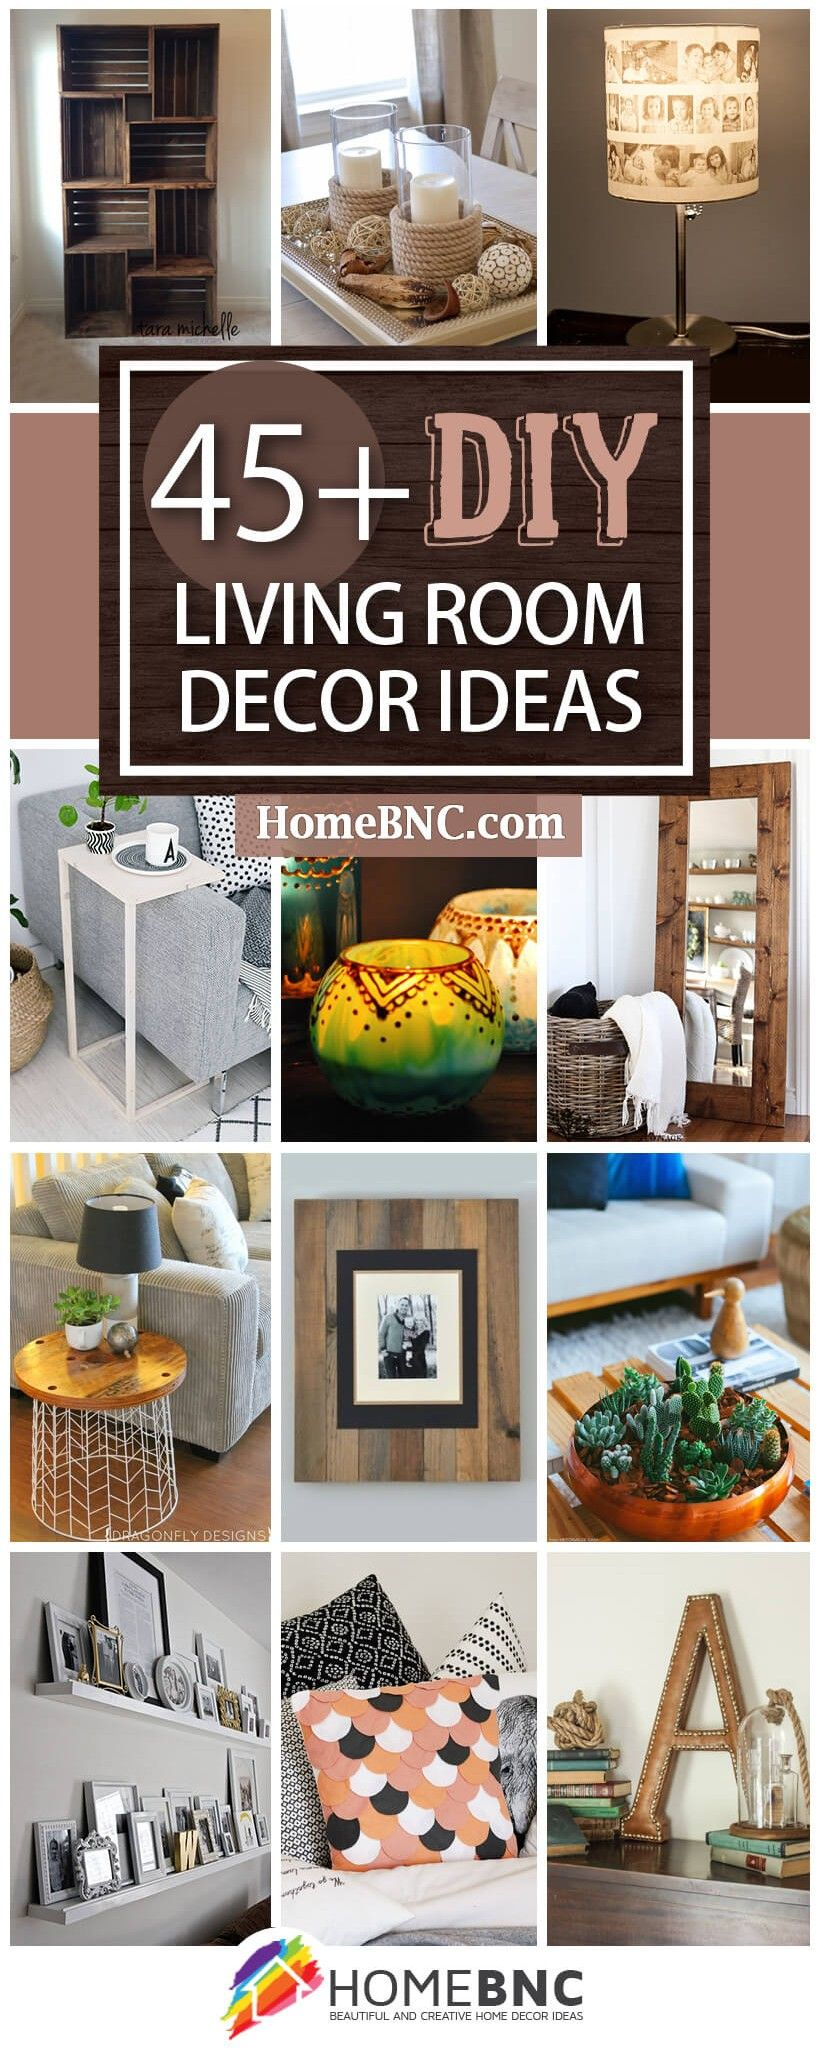 45 Inspiring Diy Living Room Decorating Ideas For Designers